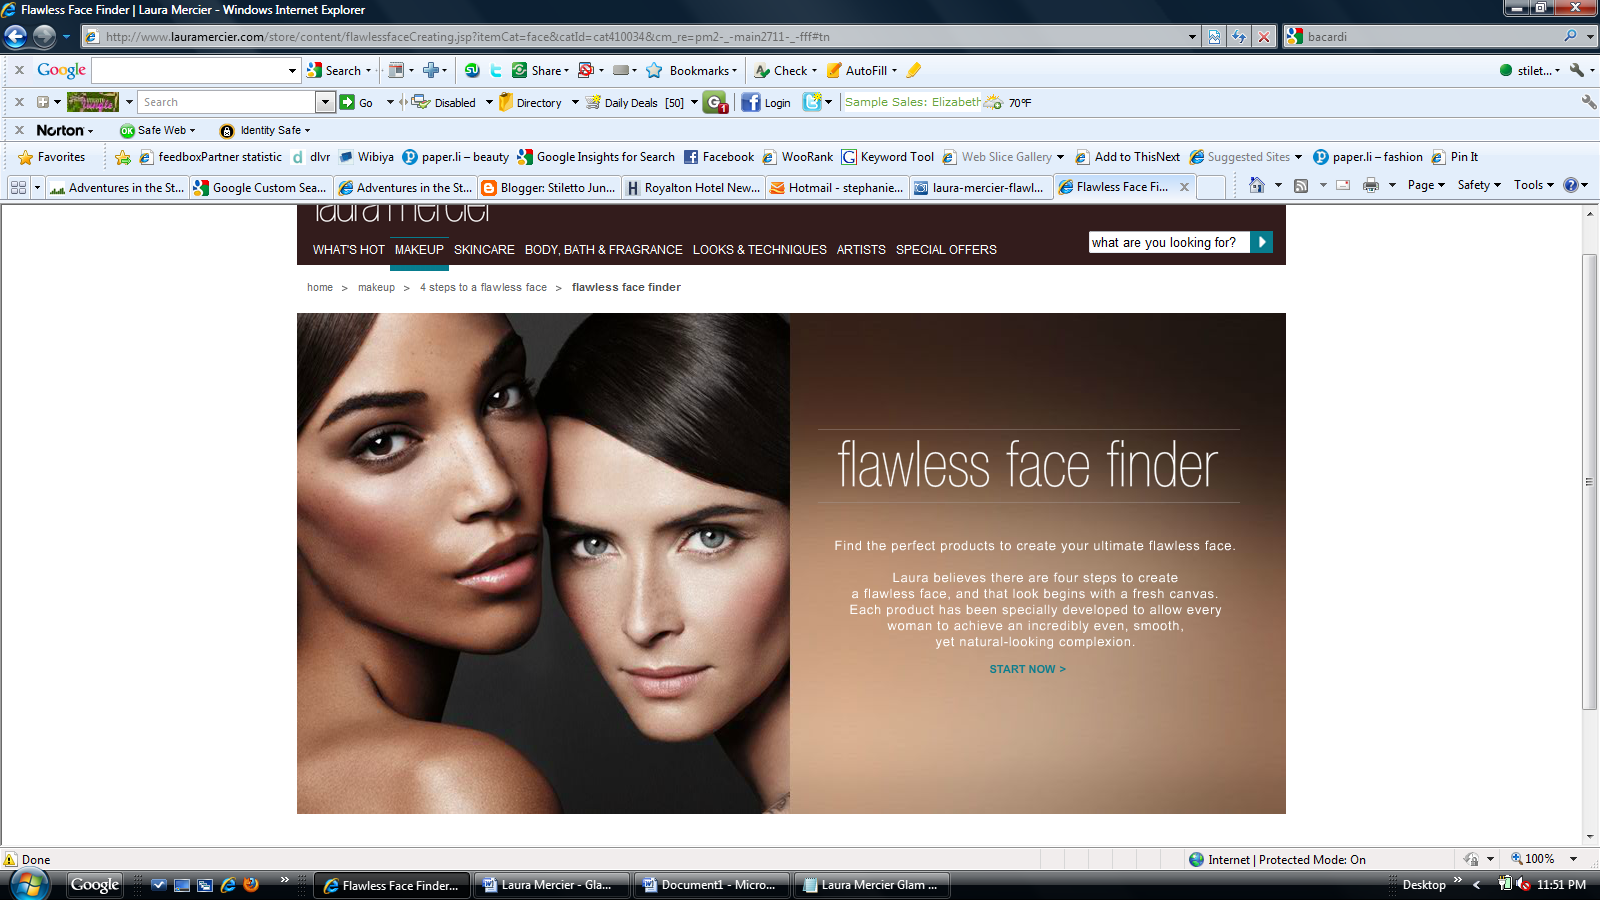 Laura Mercier Flawless Face - The Flawless Face Finder